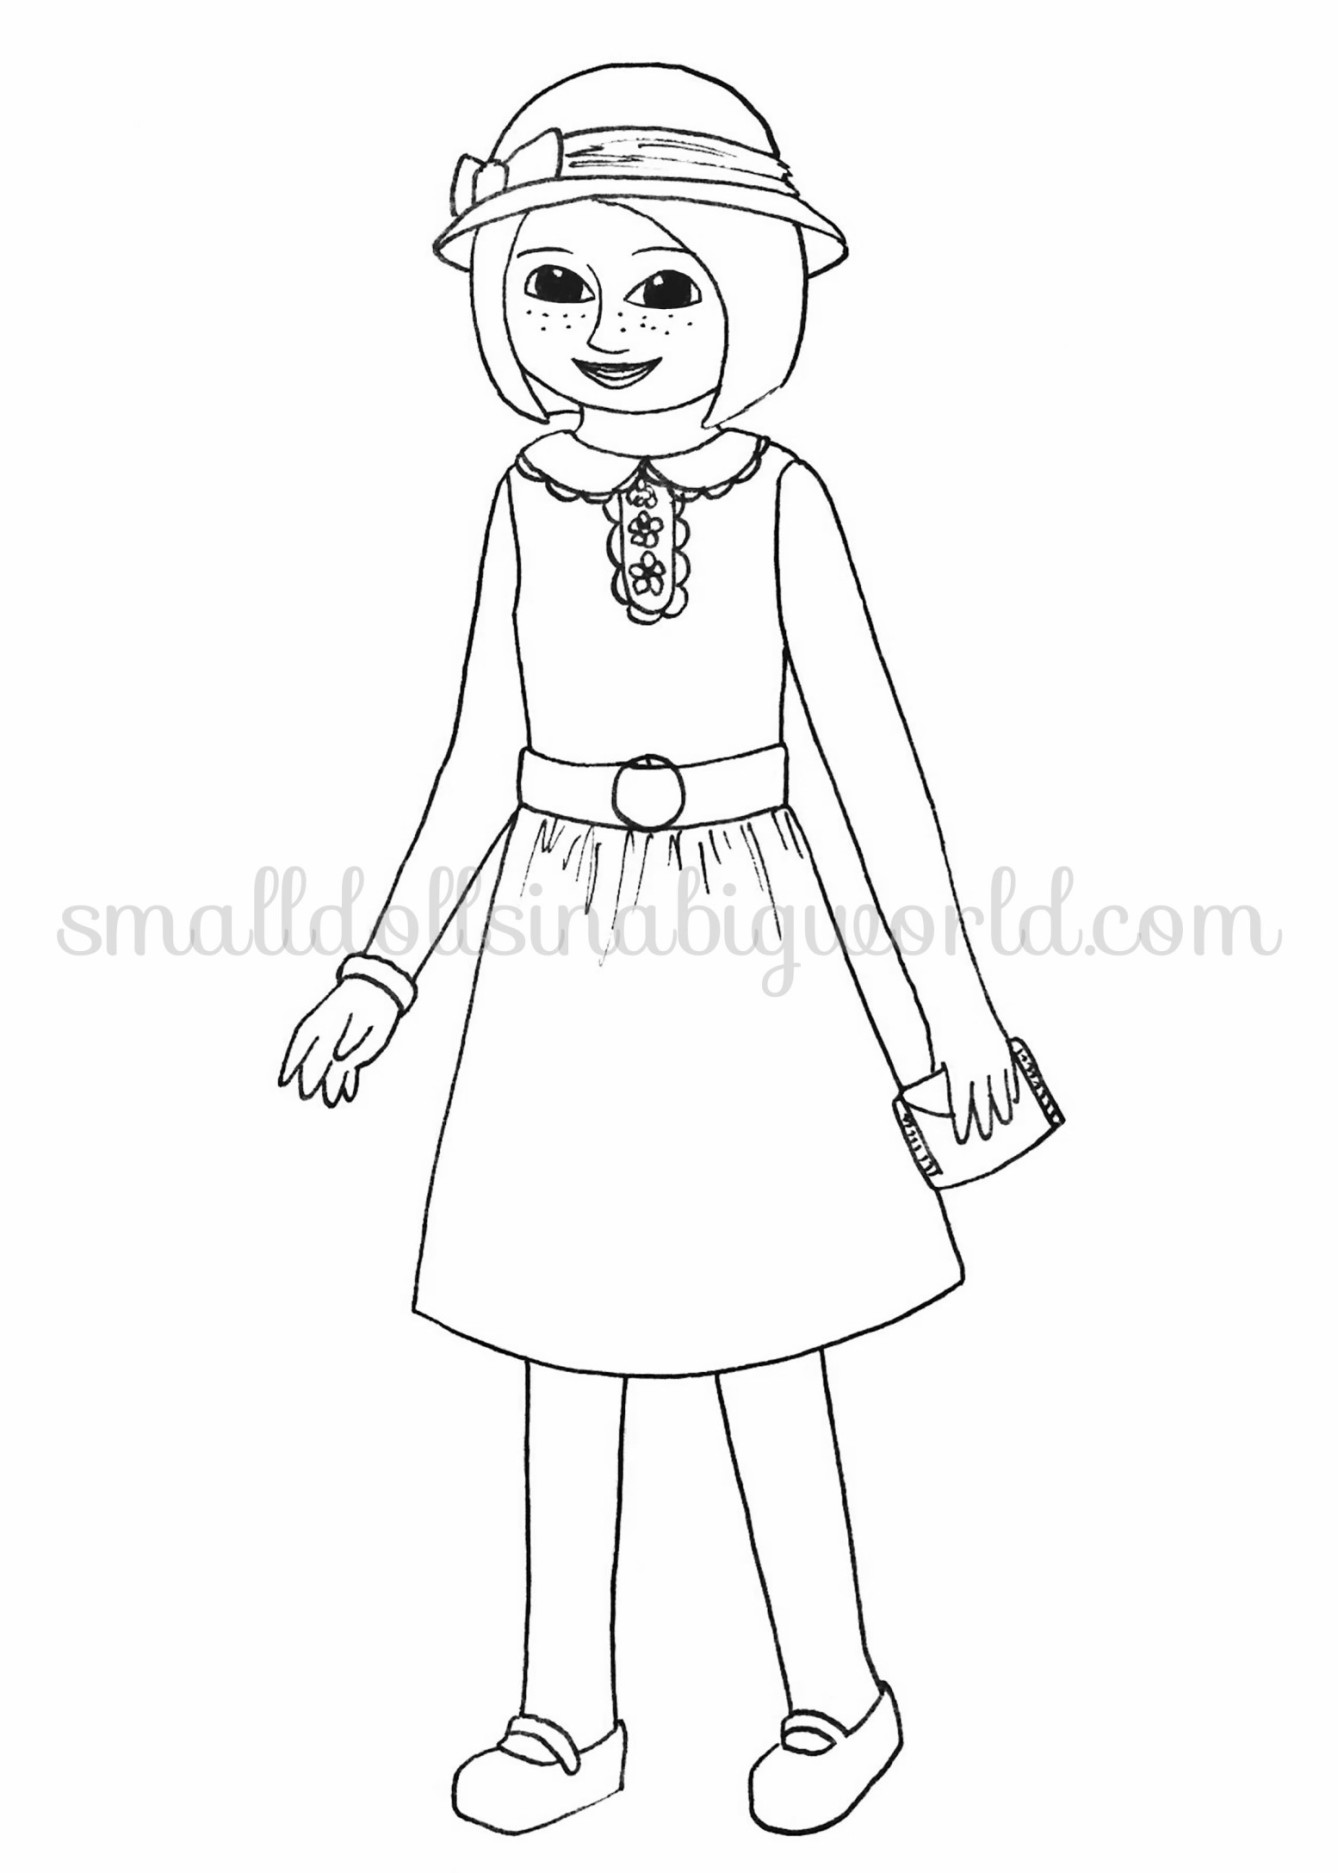 Kit american girl free coloring pages for American girl doll coloring page